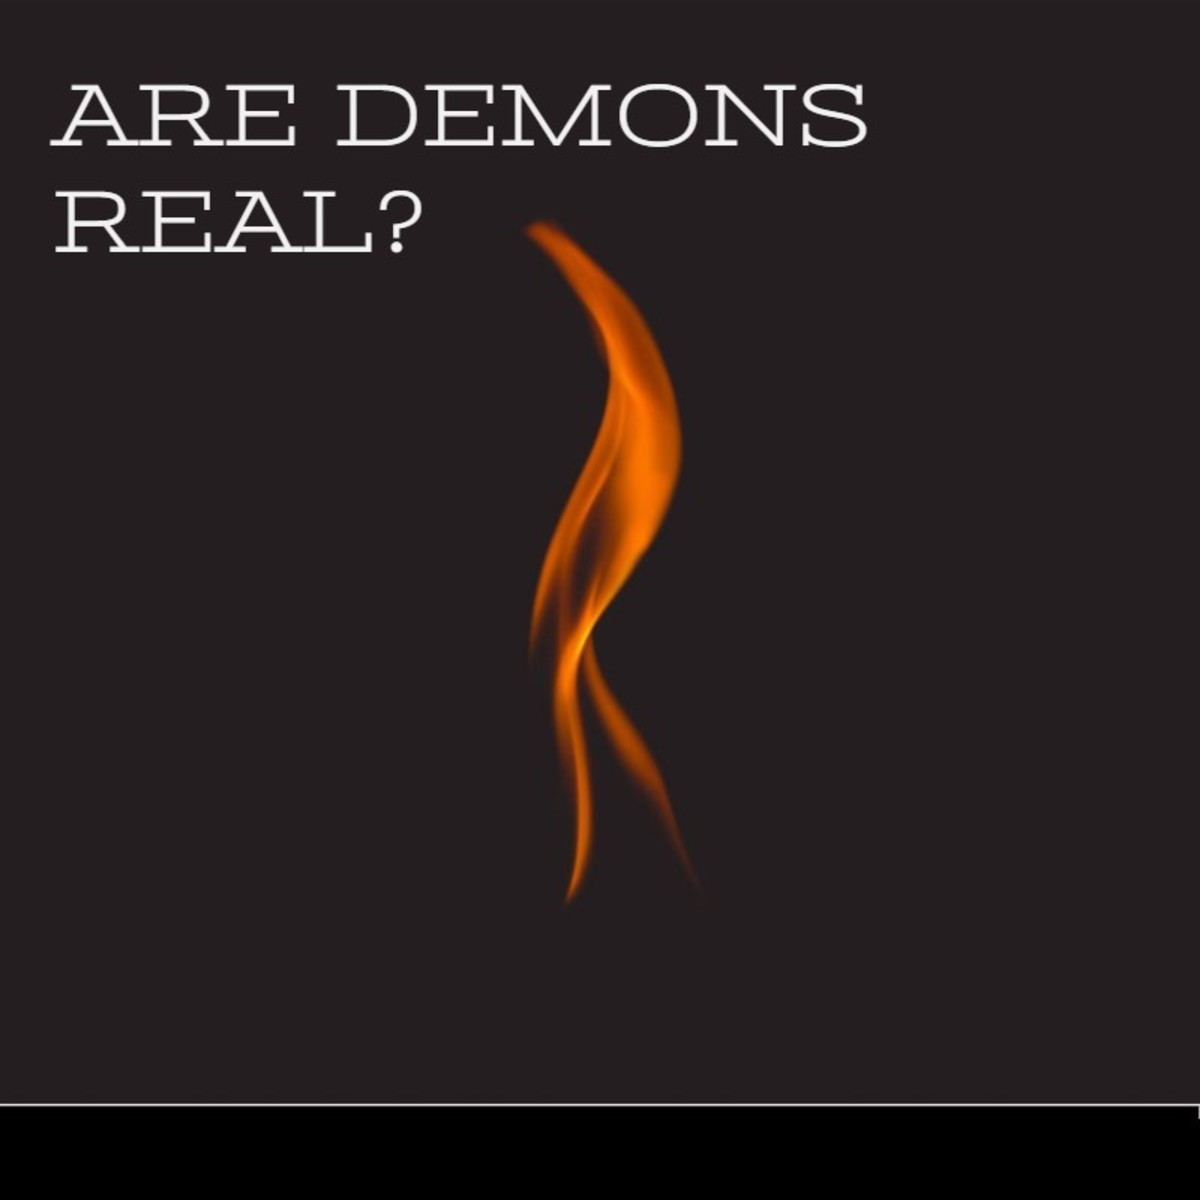 Are Demons Real?